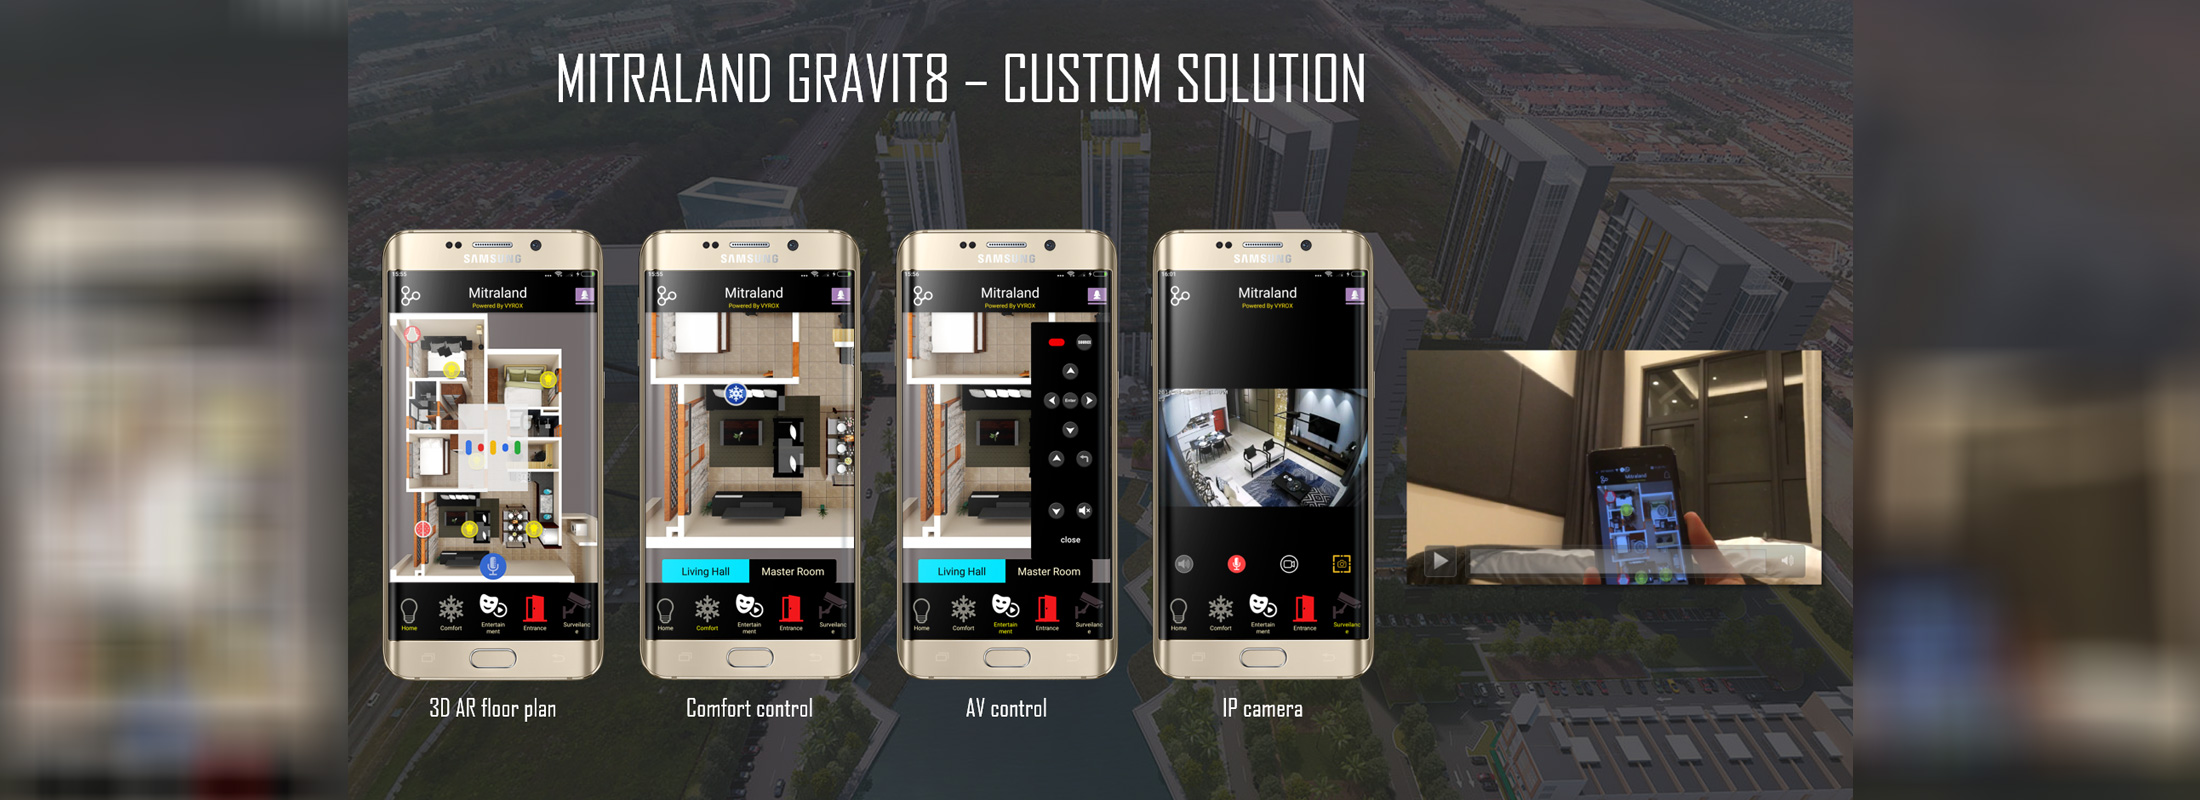 Mitraland Gravit8 - custom smarthome solution, 3D AR floor plan, comfort control, av control, ip camera